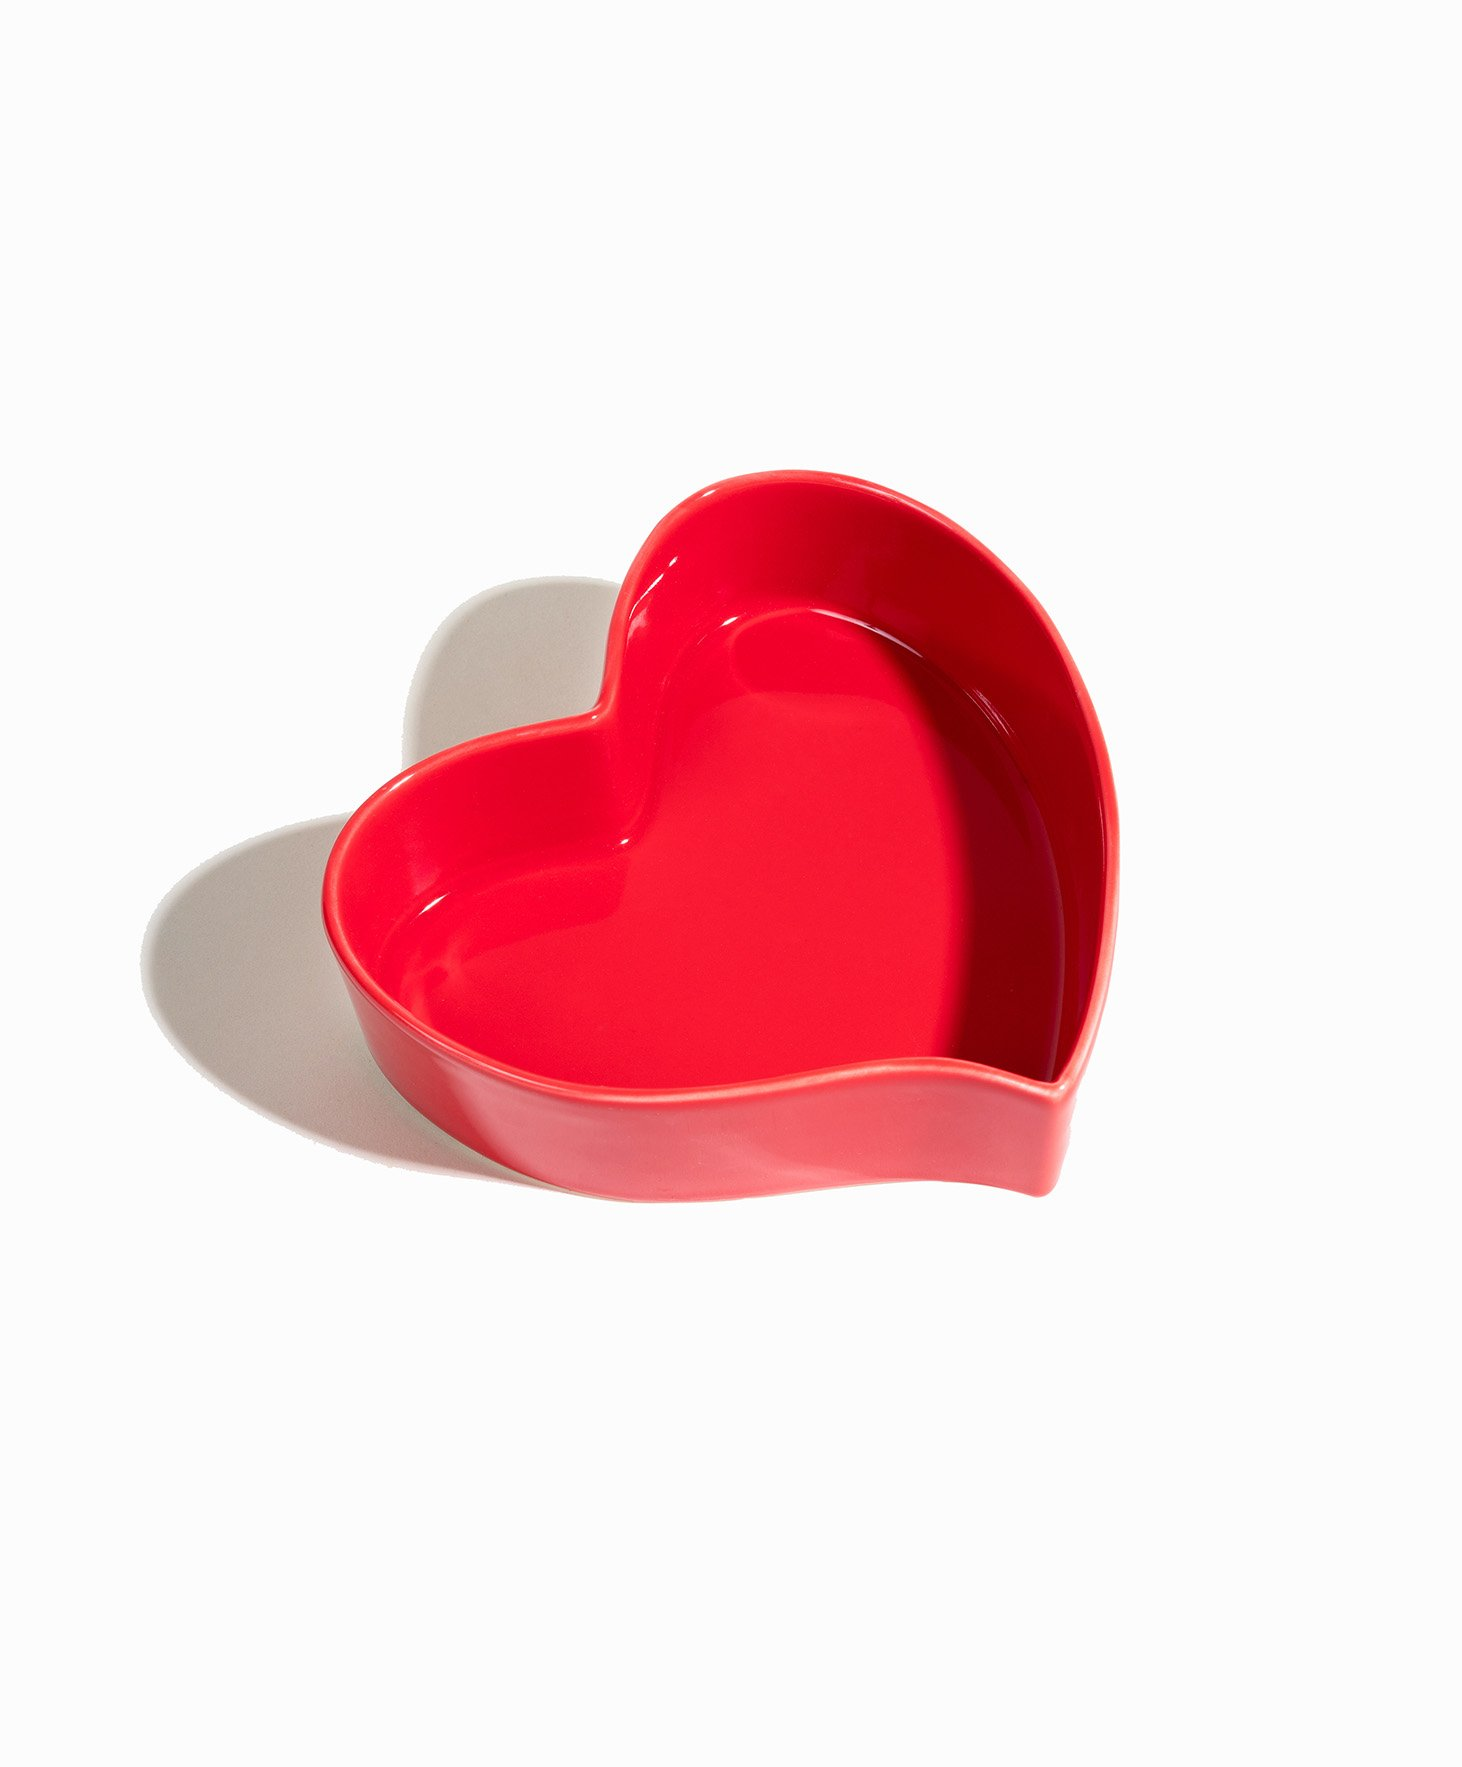 The Original Ceramic Heart Bowl - Self-Love Heart-Shaped Bowl by Breakfast Criminals. Unique Asymmetric Design. Breakfast Bowl That Can Be Used For Smoothie Bowls and More. Aka @heartbowl